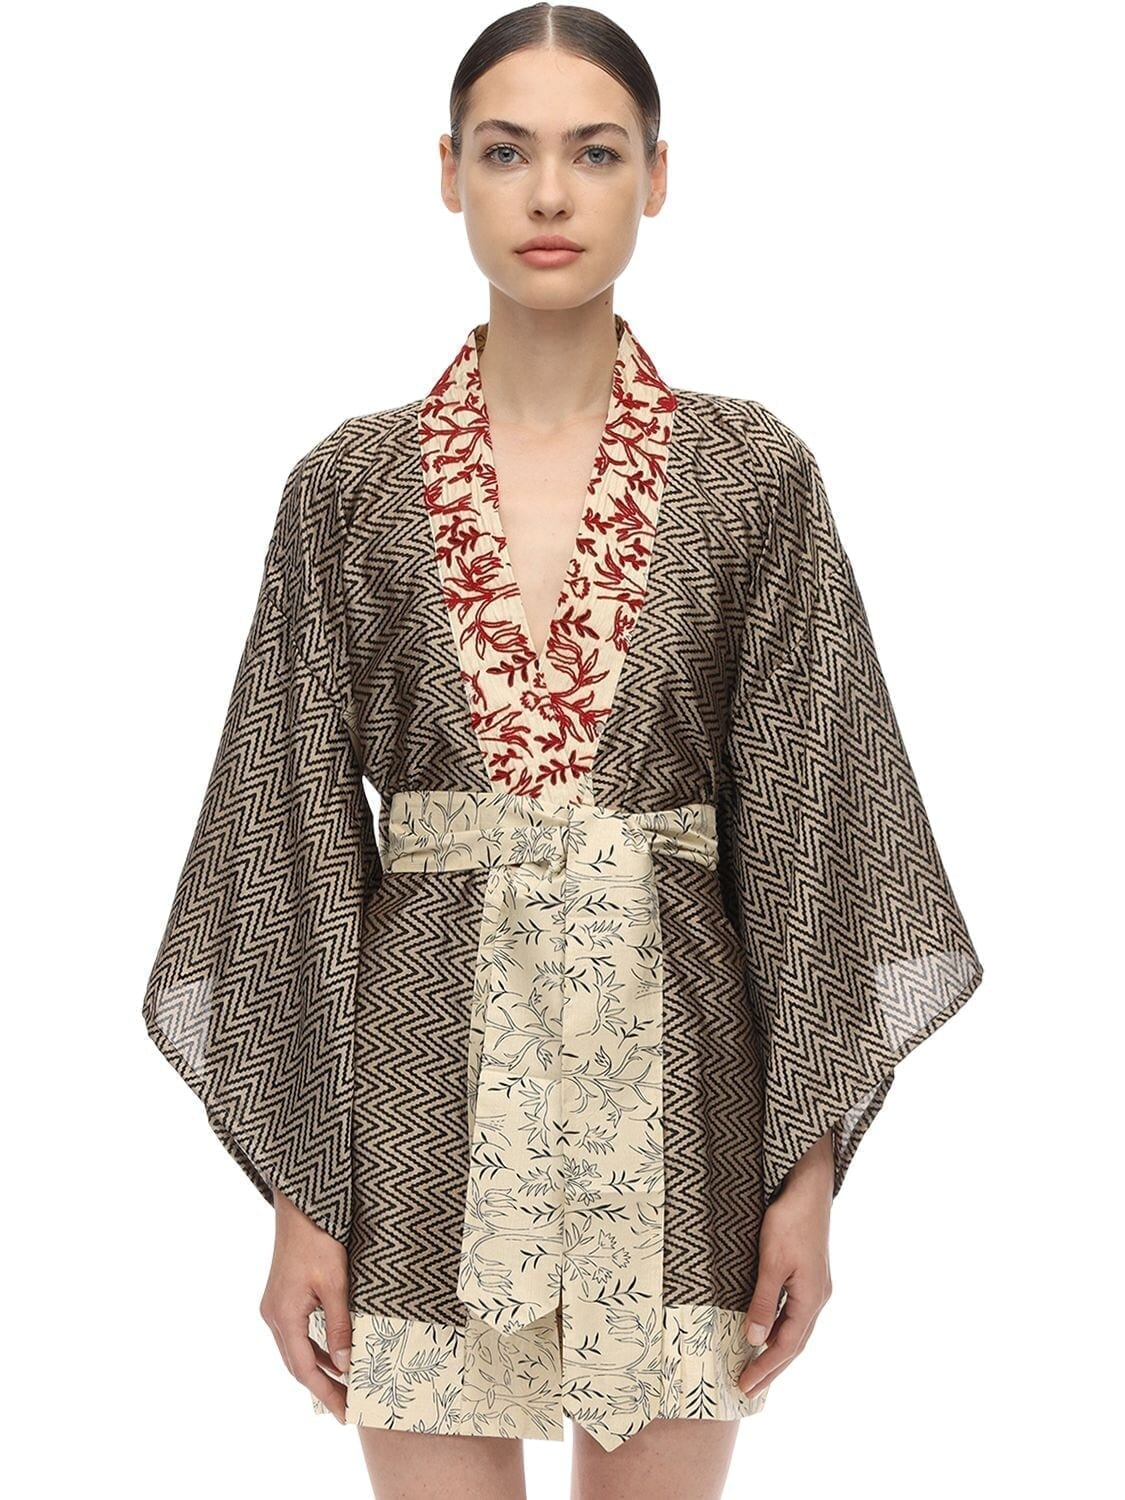 I WAS A SARI LVR Sustainable Hand-embroidered Kimono Dress